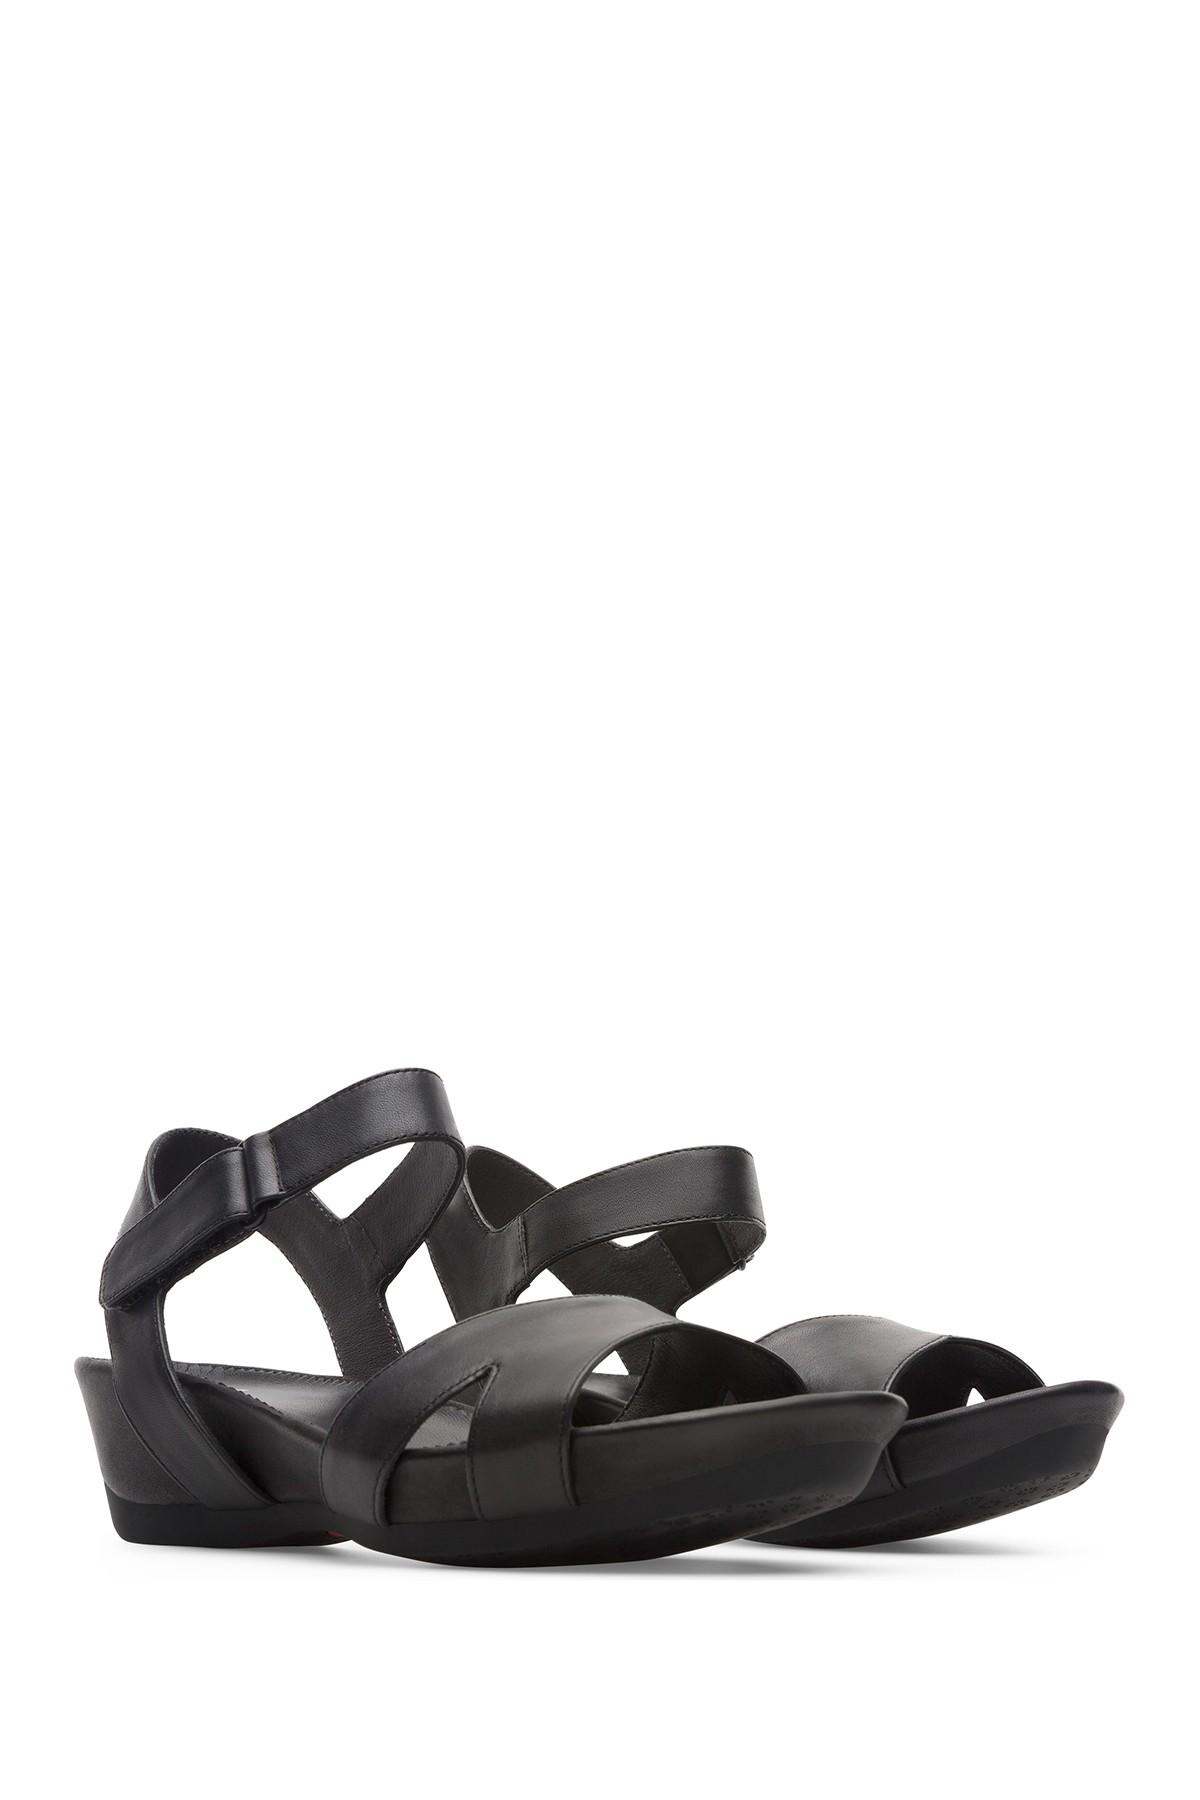 4dec36790105 Lyst - Camper Micro Leather Wedge Sandal in Black